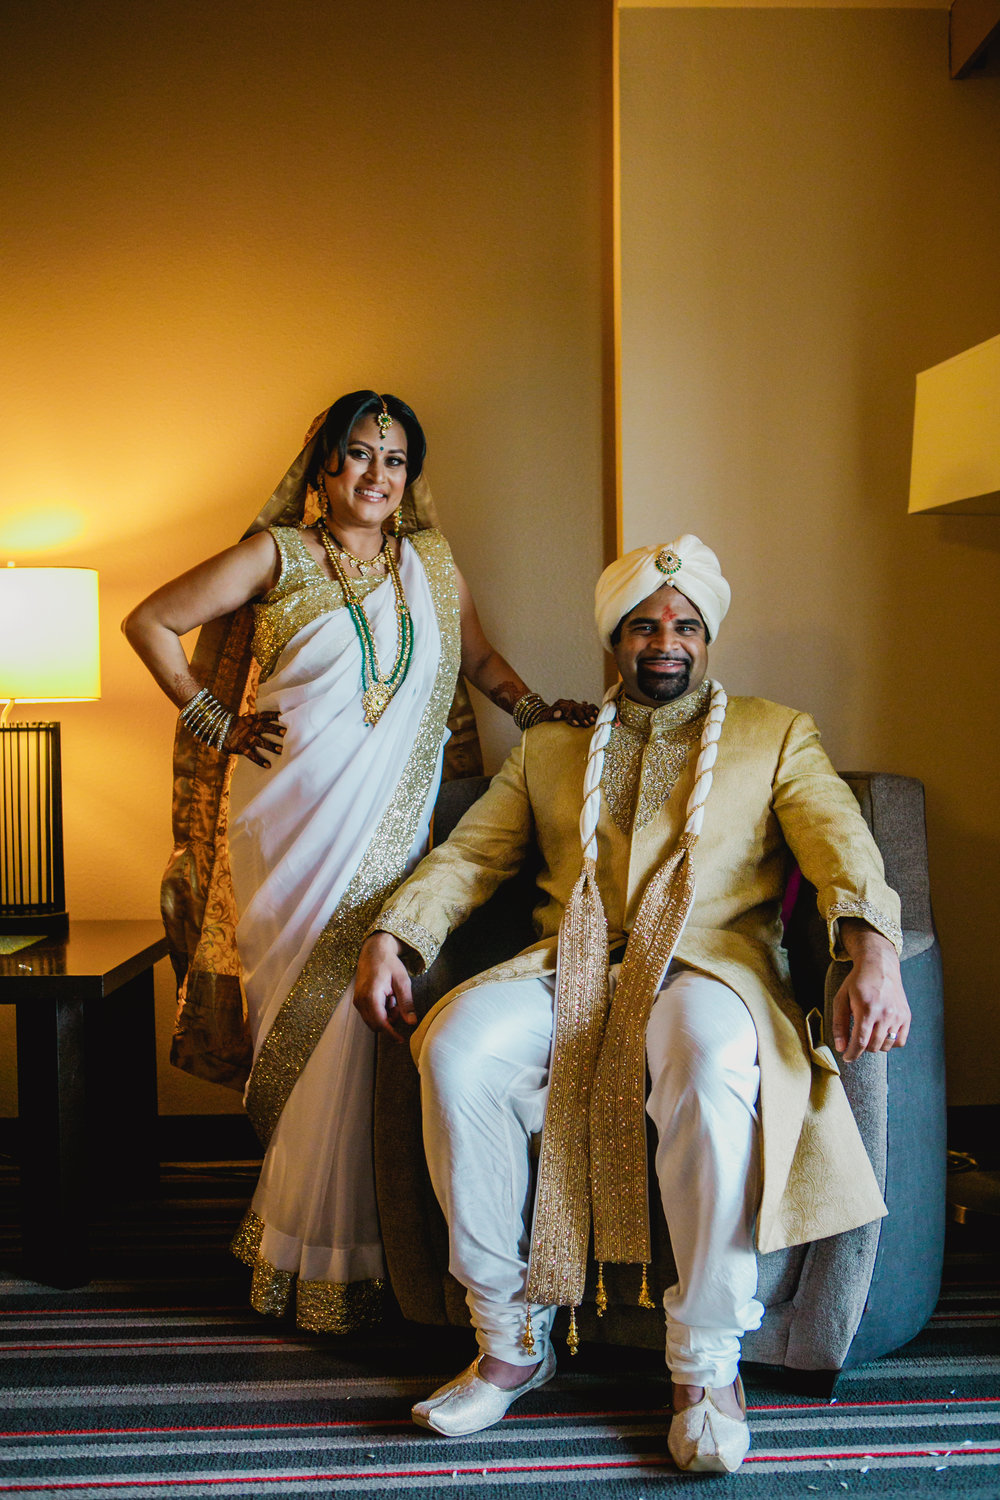 Indian wedding - Wedding photographer - Dallas Photographer - South Asian Wedding -  elizalde photography-53.jpg